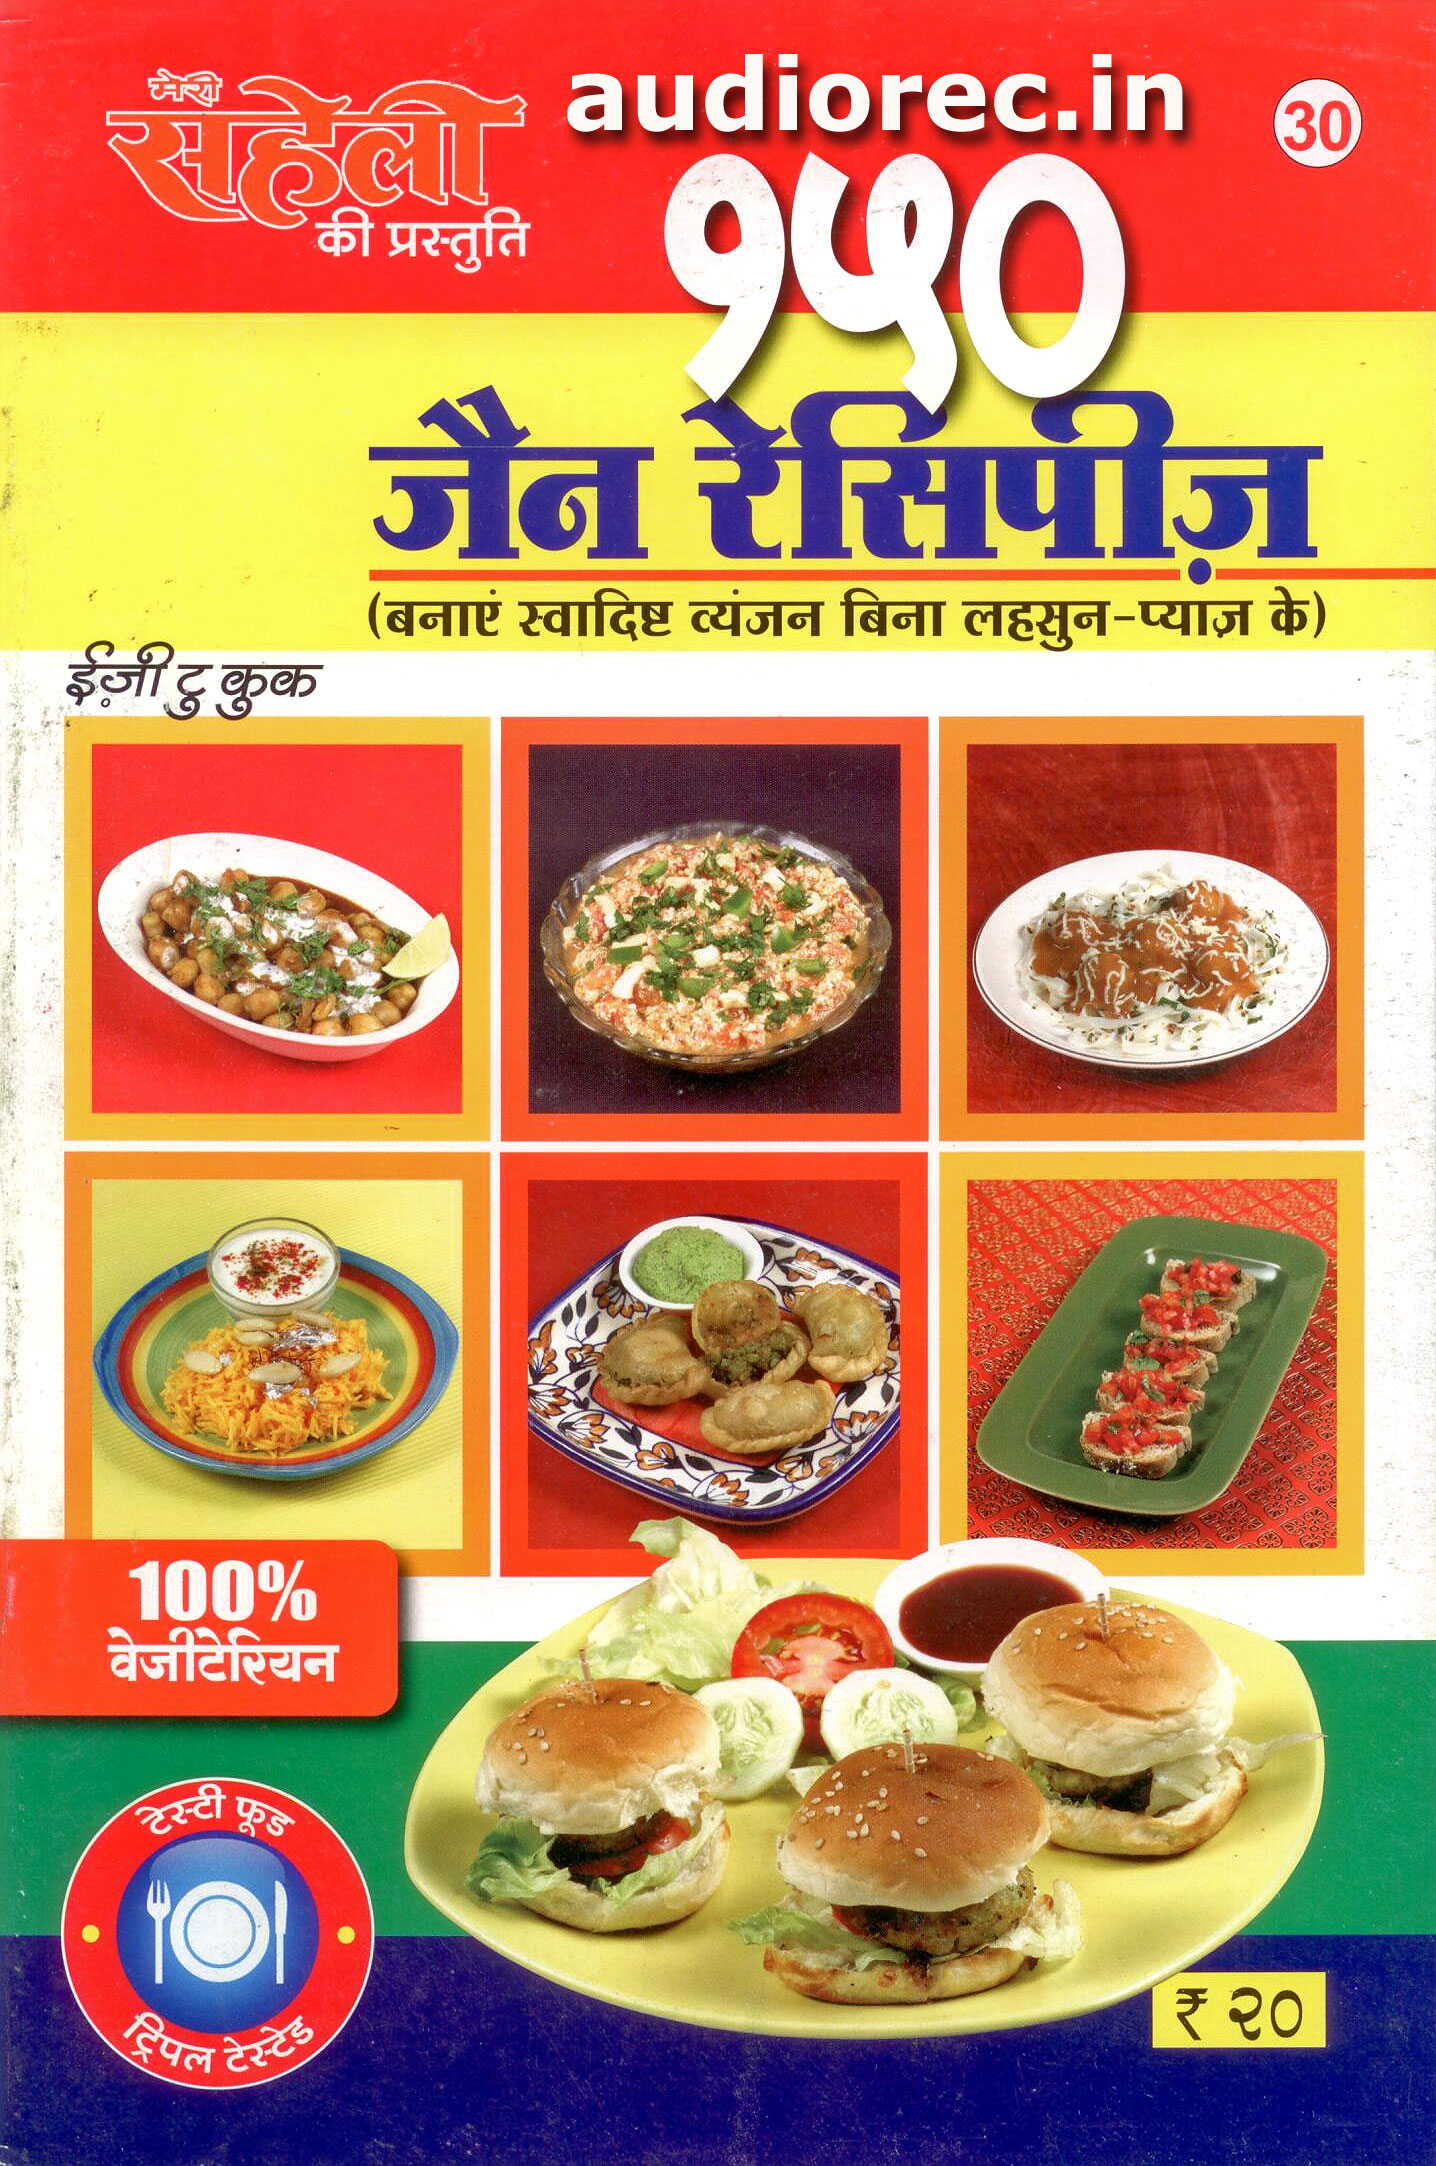 Audiorec online indian music store cookery hindi jain food recipes hindi book no 30 forumfinder Images